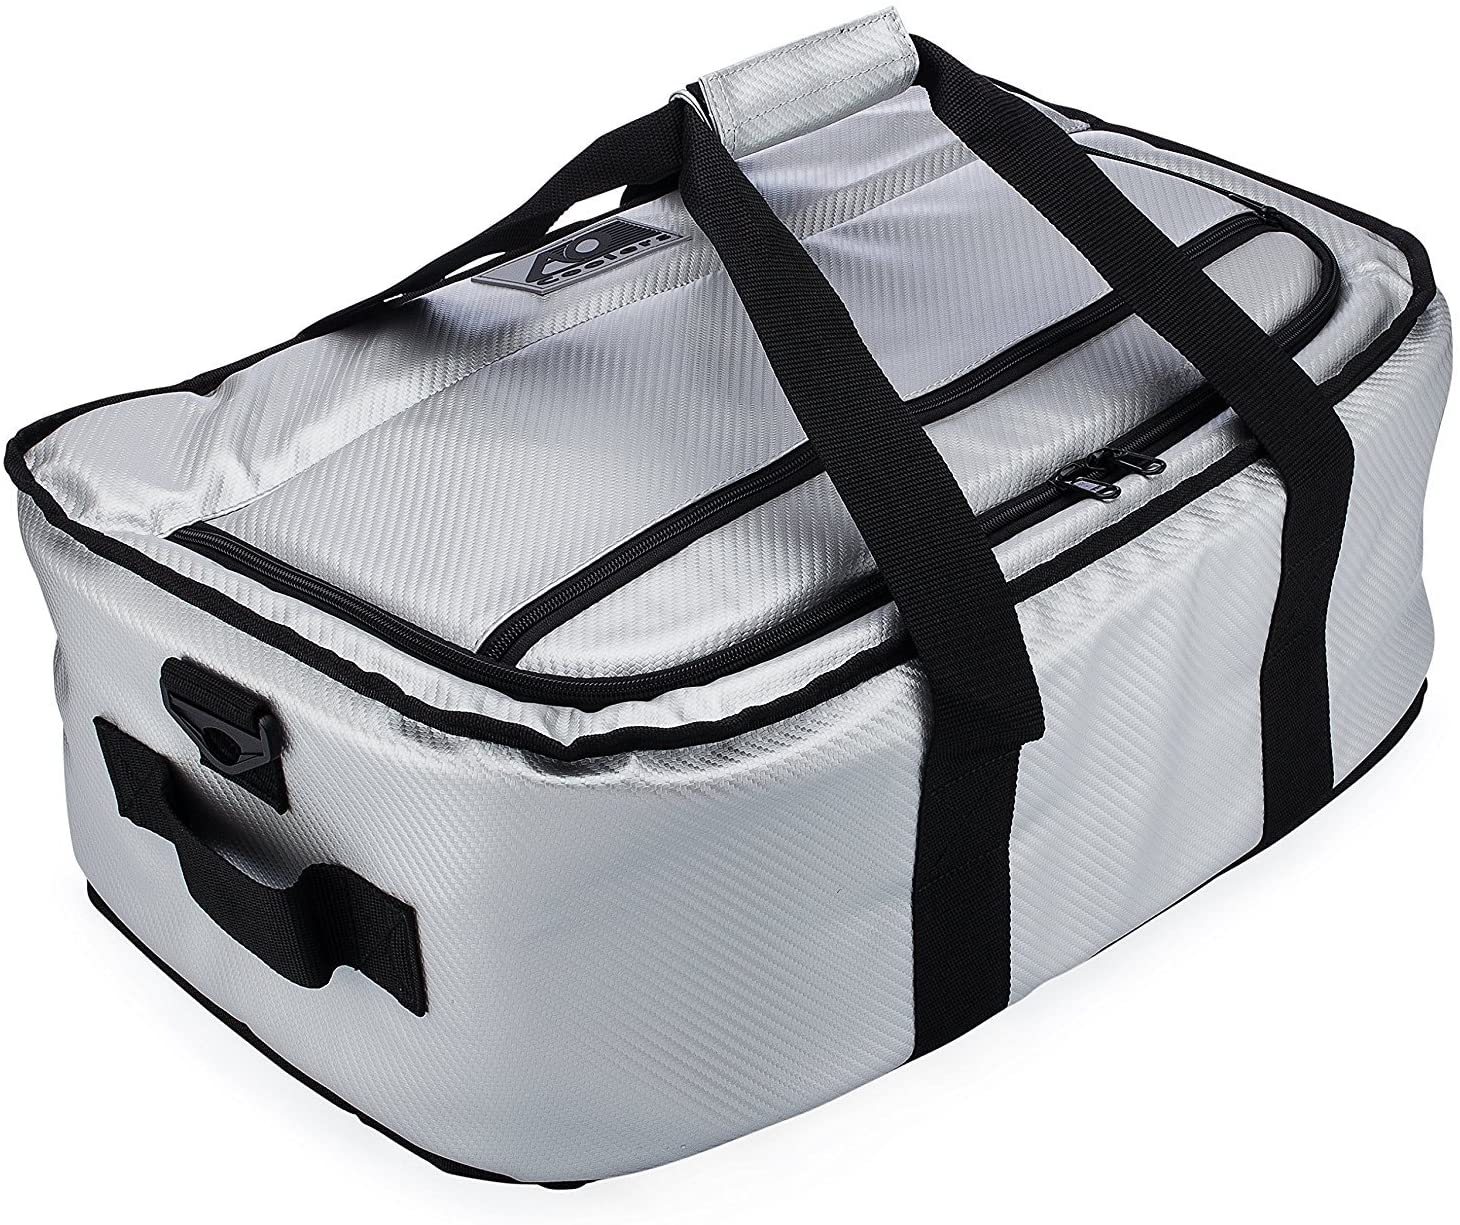 AO Coolers Stow-N-Go Cooler, Carbon Silver , 38-Can